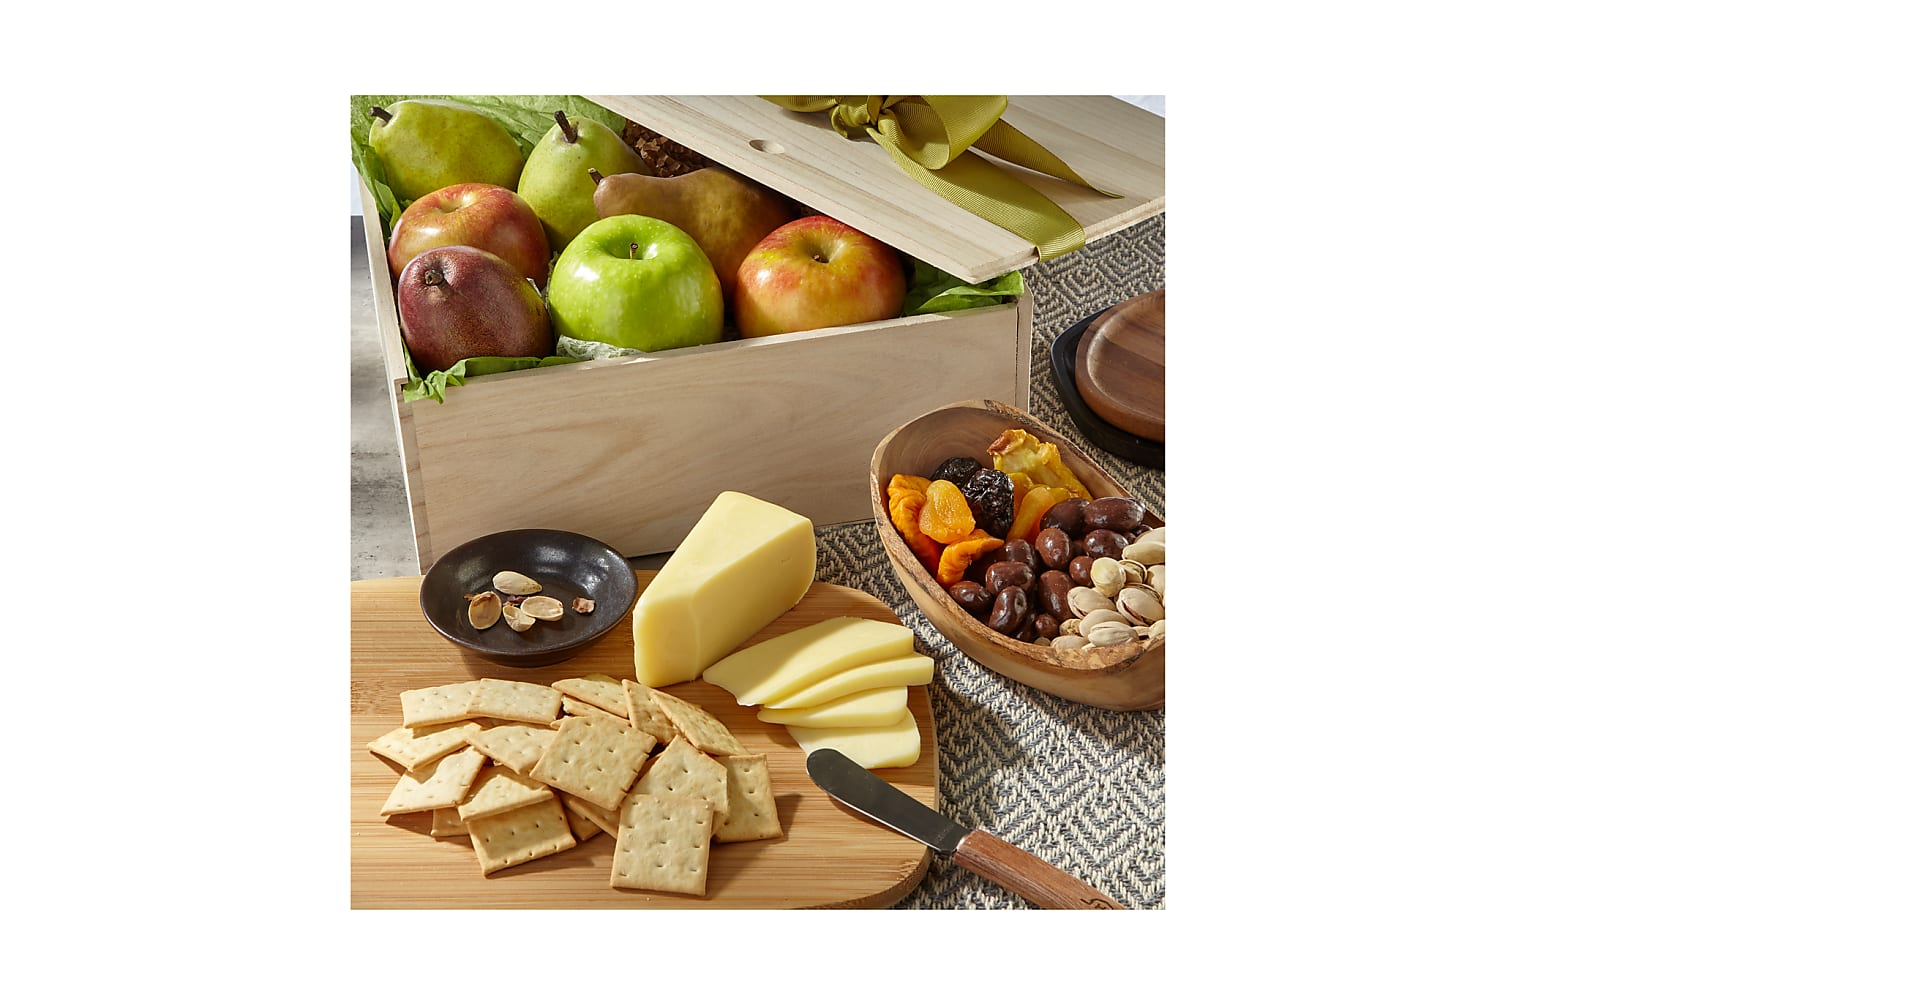 Gourmet Fruit, Cheese & Nut Gift Crate - Image 1 Of 2